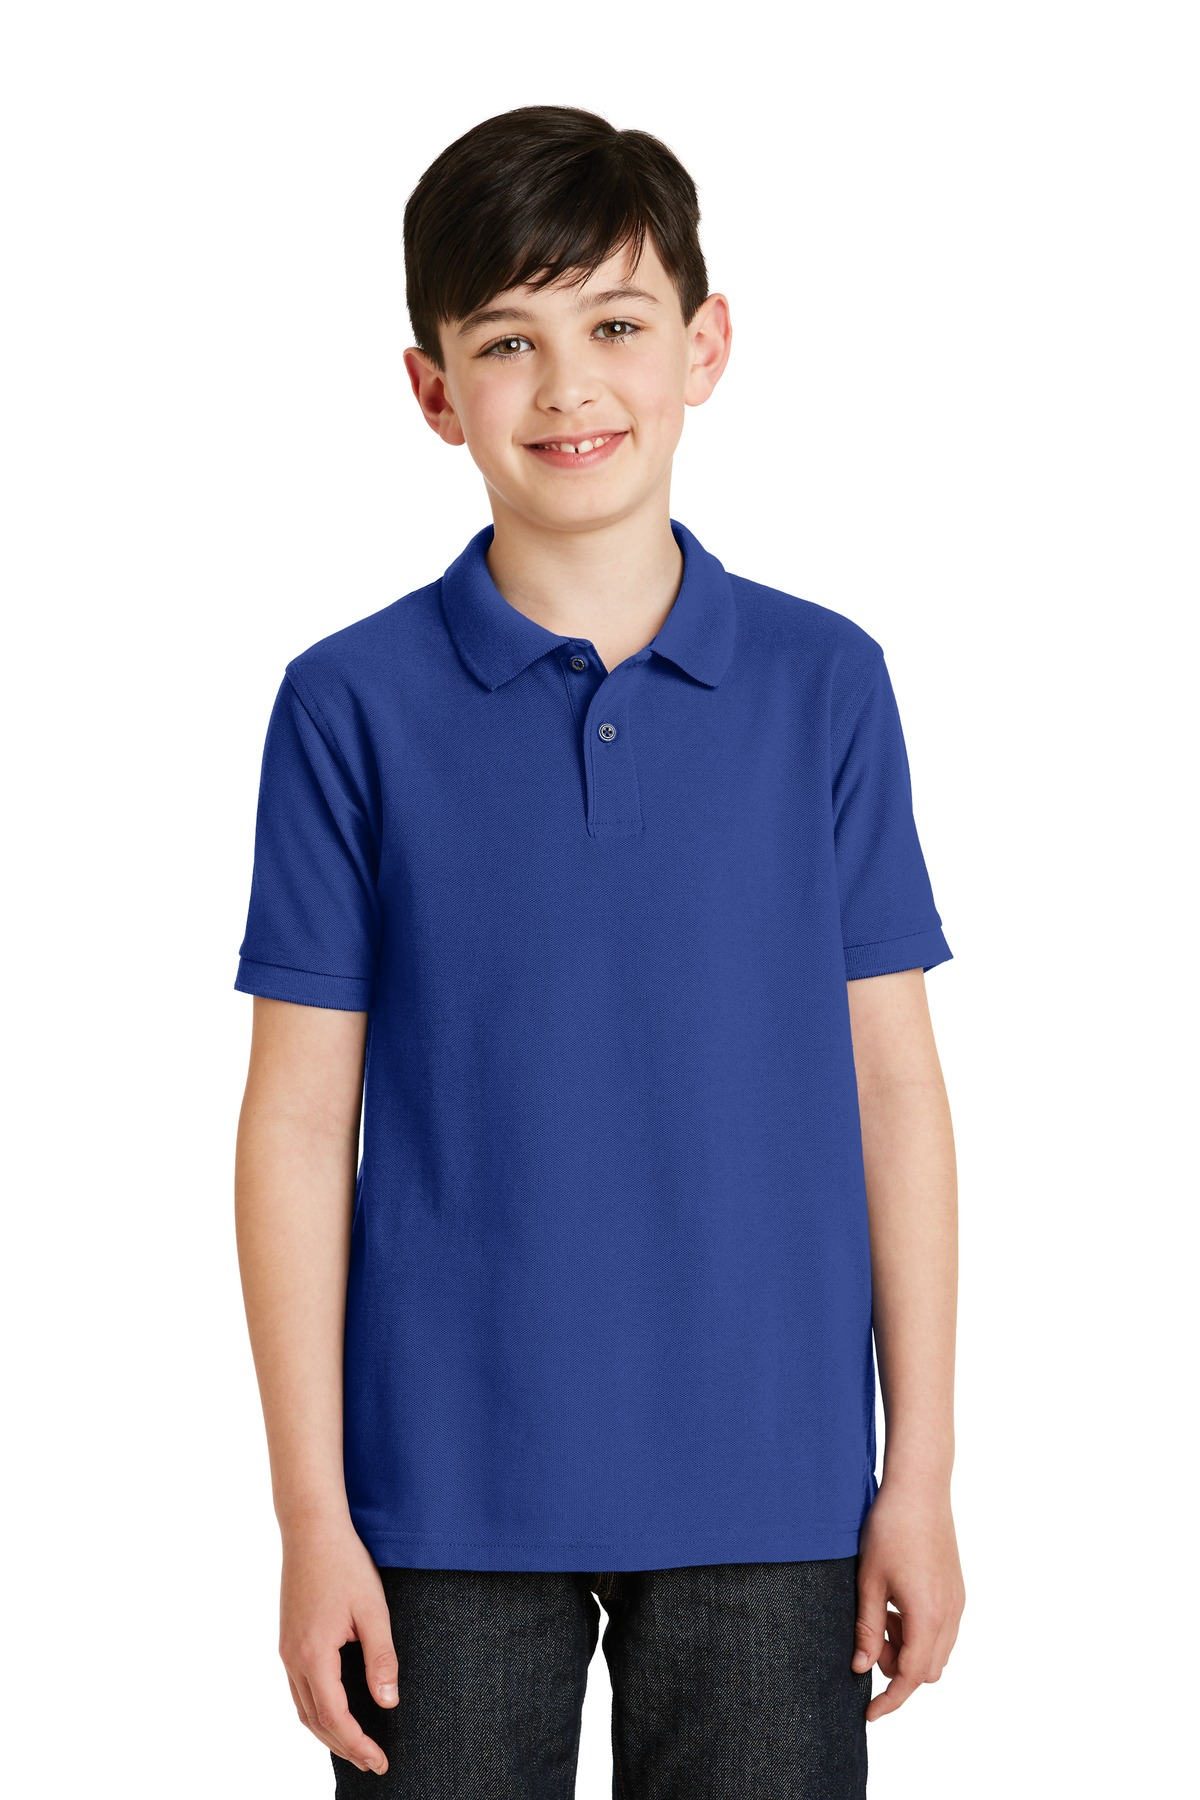 Port Authority ®  Youth Silk Touch™ Polo.  Y500 - Royal